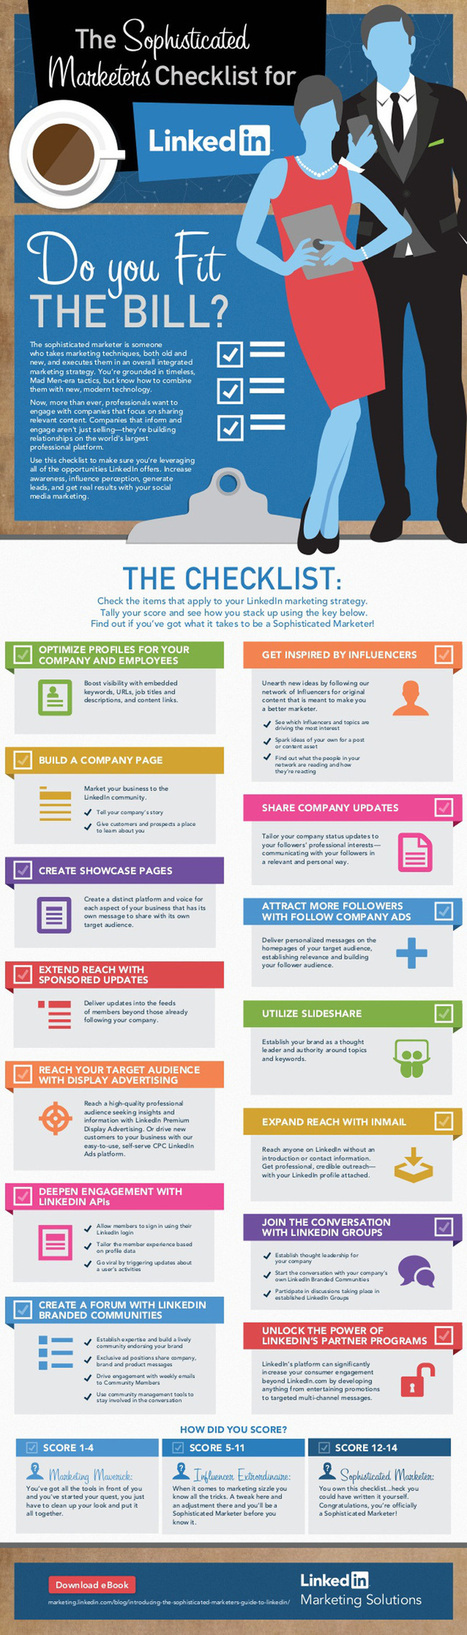 The Sophisticated Marketer's Guide to LinkedIn, an infographic | Public Relations & Social Media Insight | Scoop.it